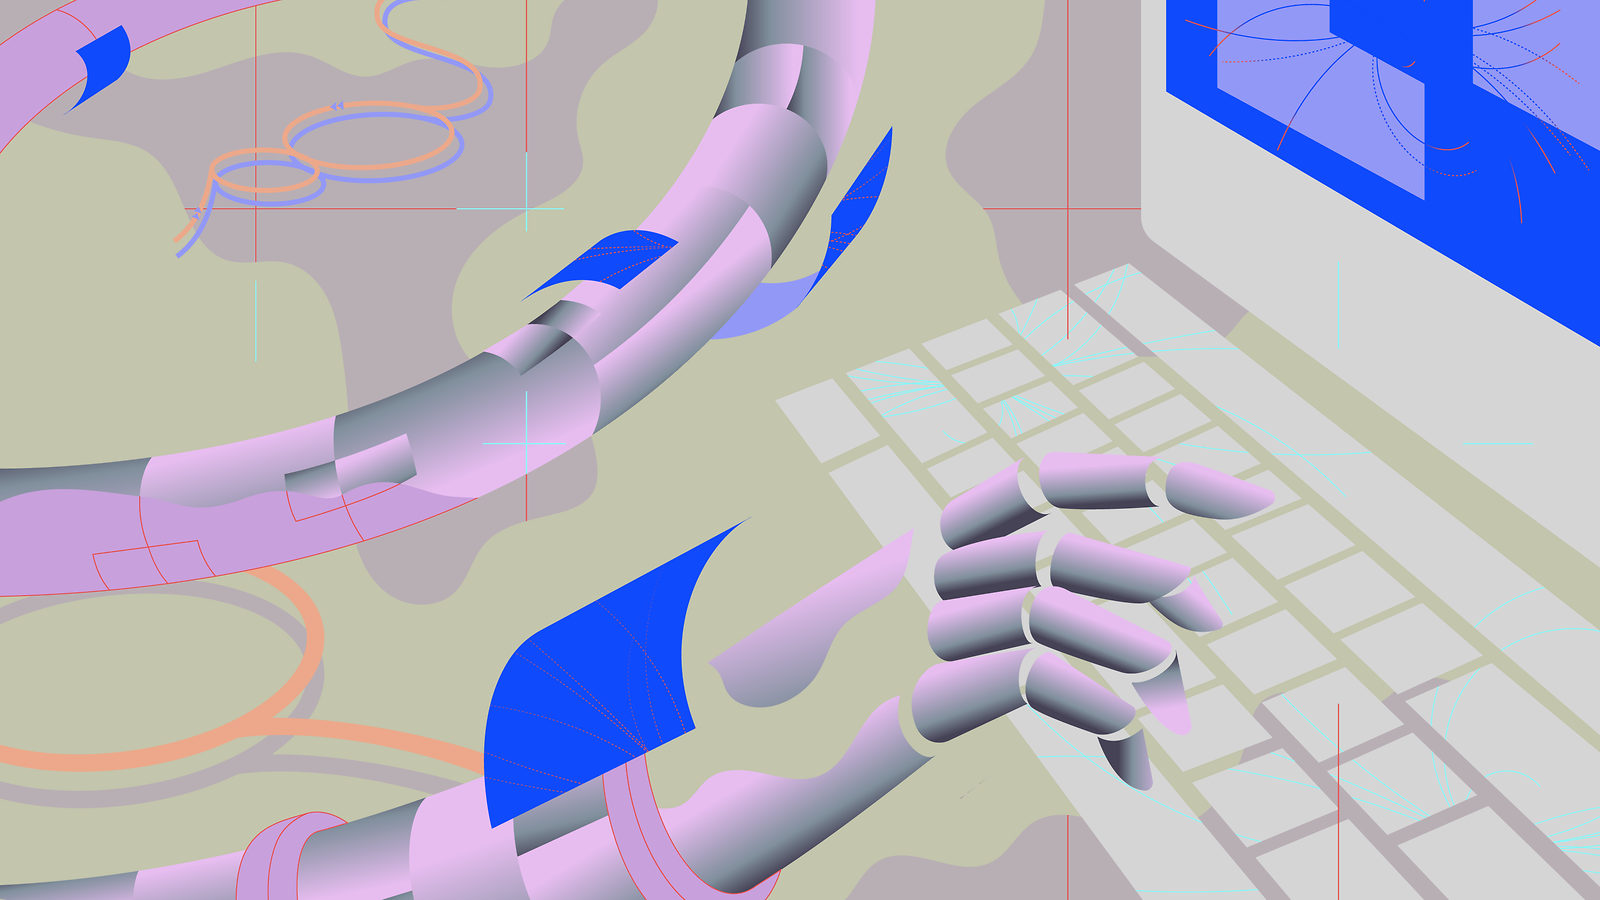 An illustration of robot hands typing on a computer